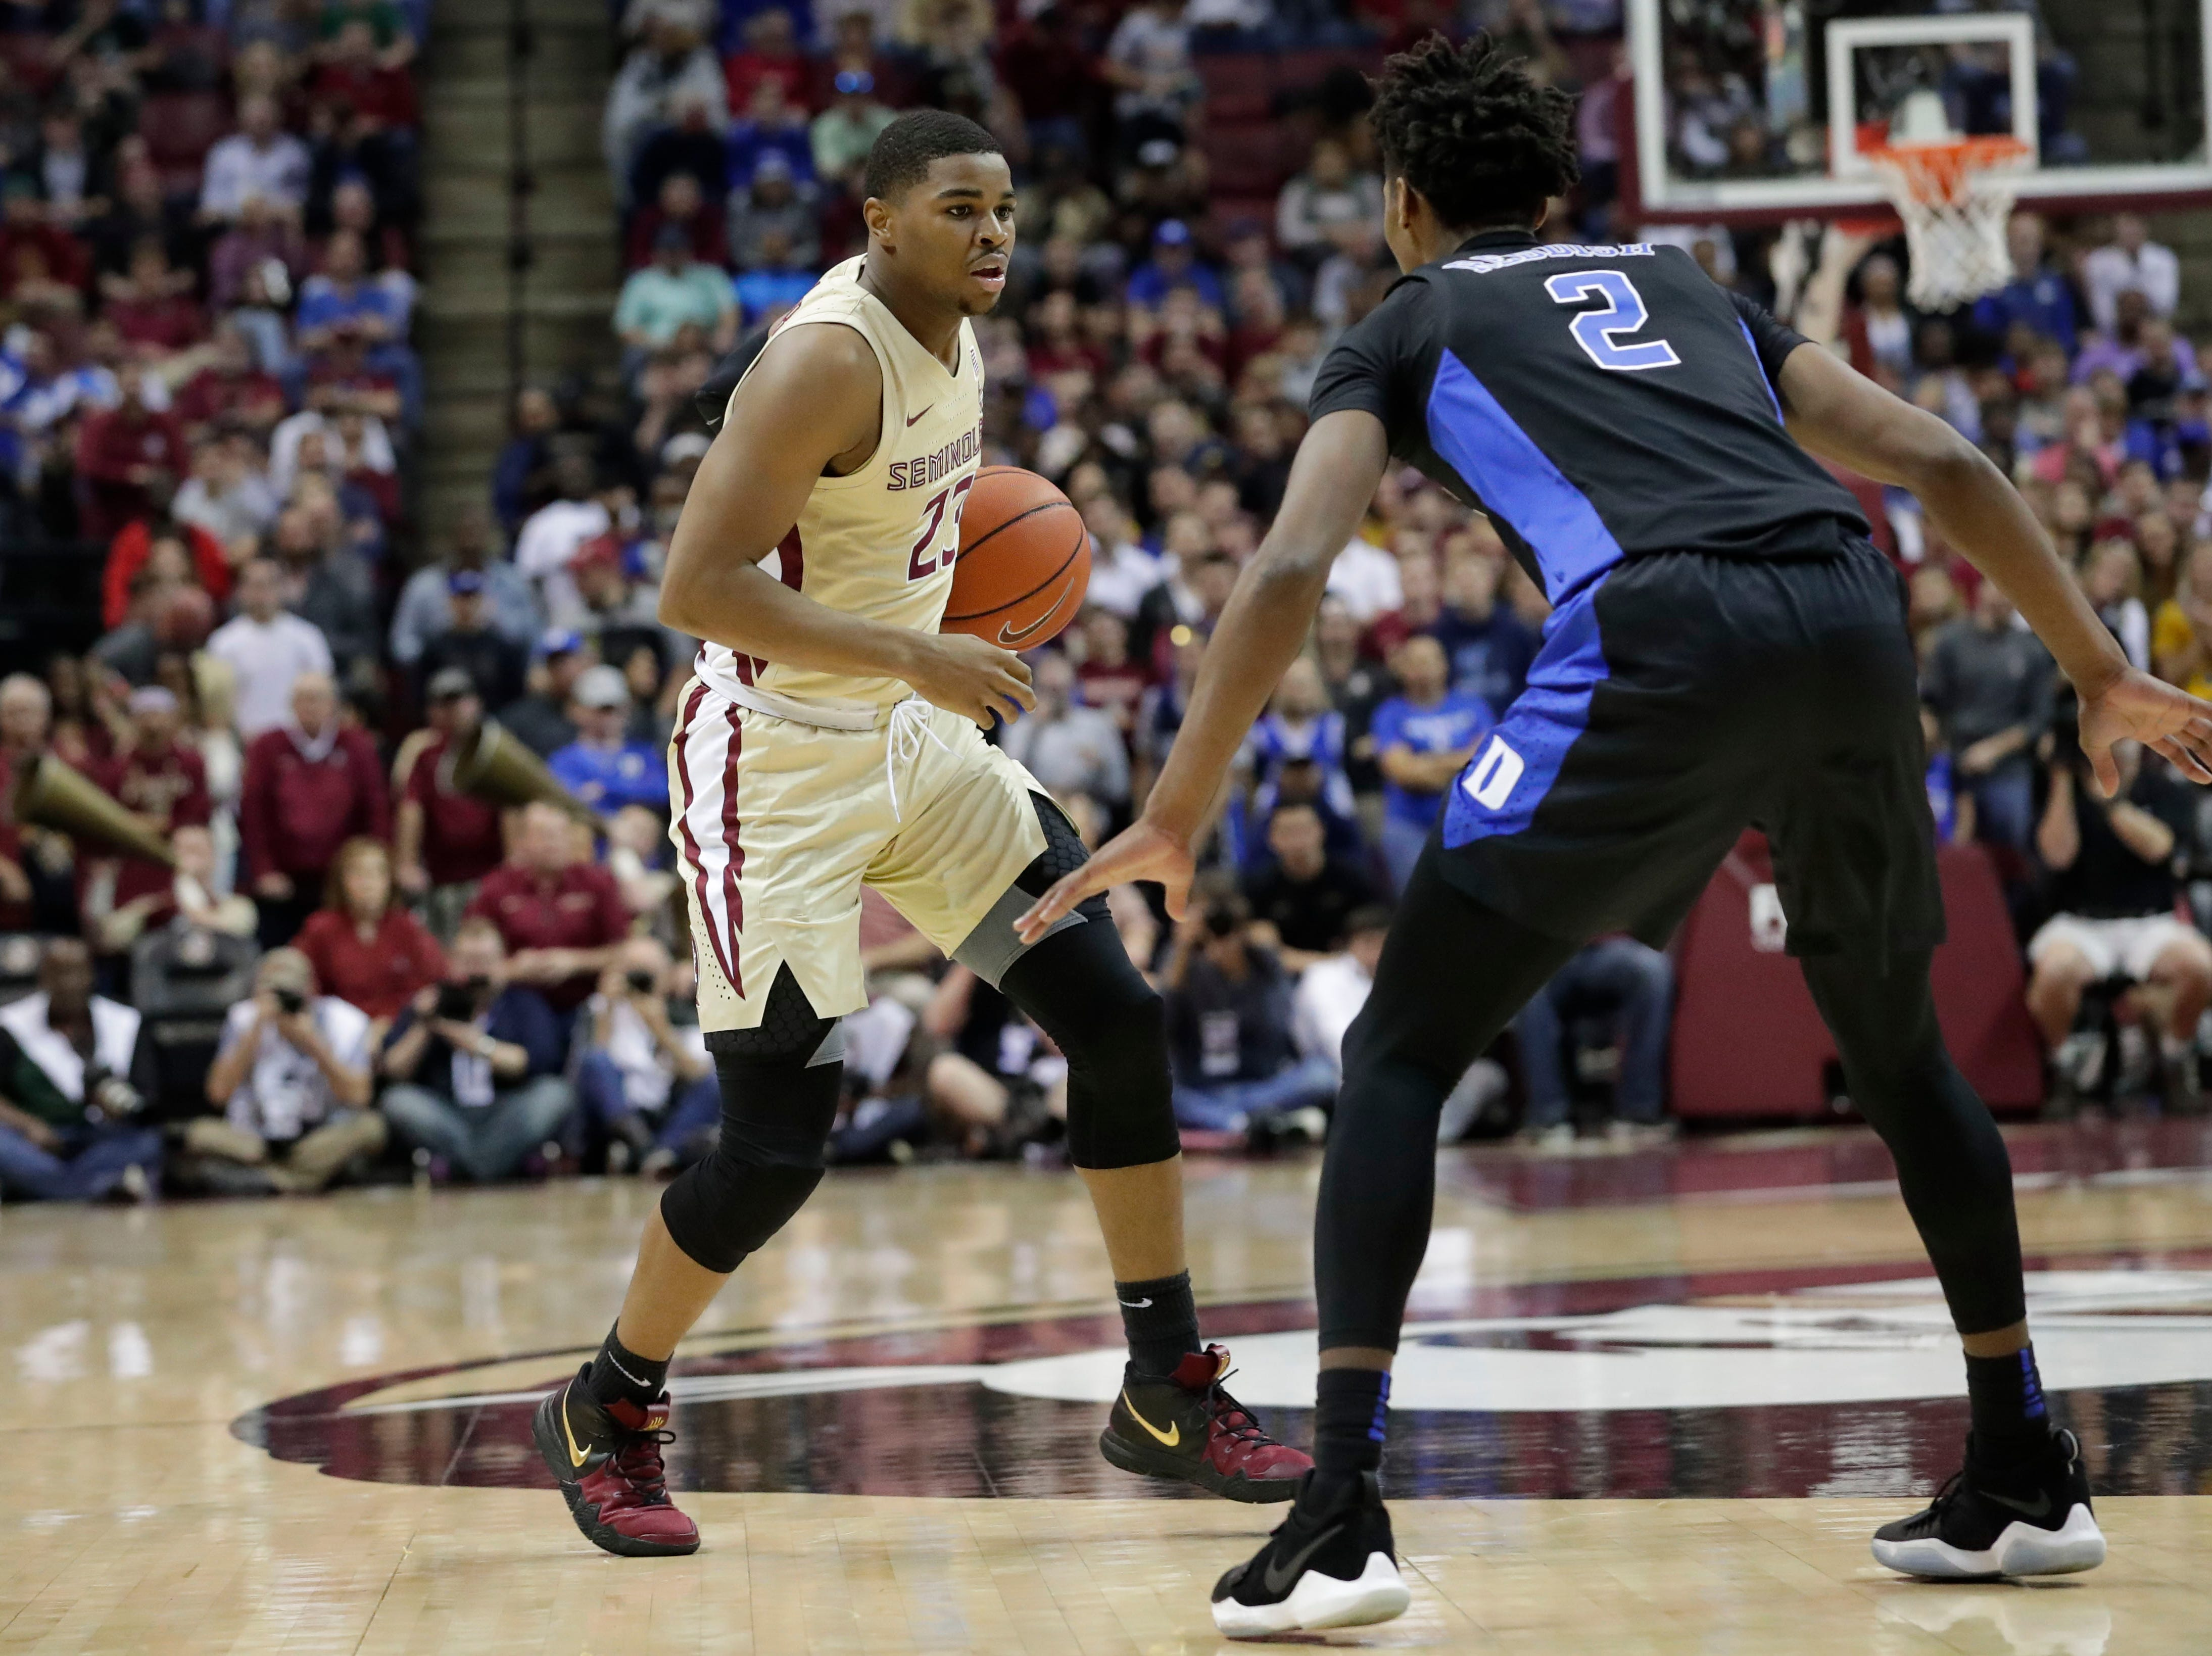 Florida State Seminoles guard M.J. Walker (23) drives the ball down the court with Duke Blue Devils forward Cam Reddish (2) staying on top of him. Ranked 13 in the ACC, the Florida State Seminoles host the number 1 team, the Duke Blue Devils, at the Tucker Civic Center, Saturday, Jan. 12, 2019.